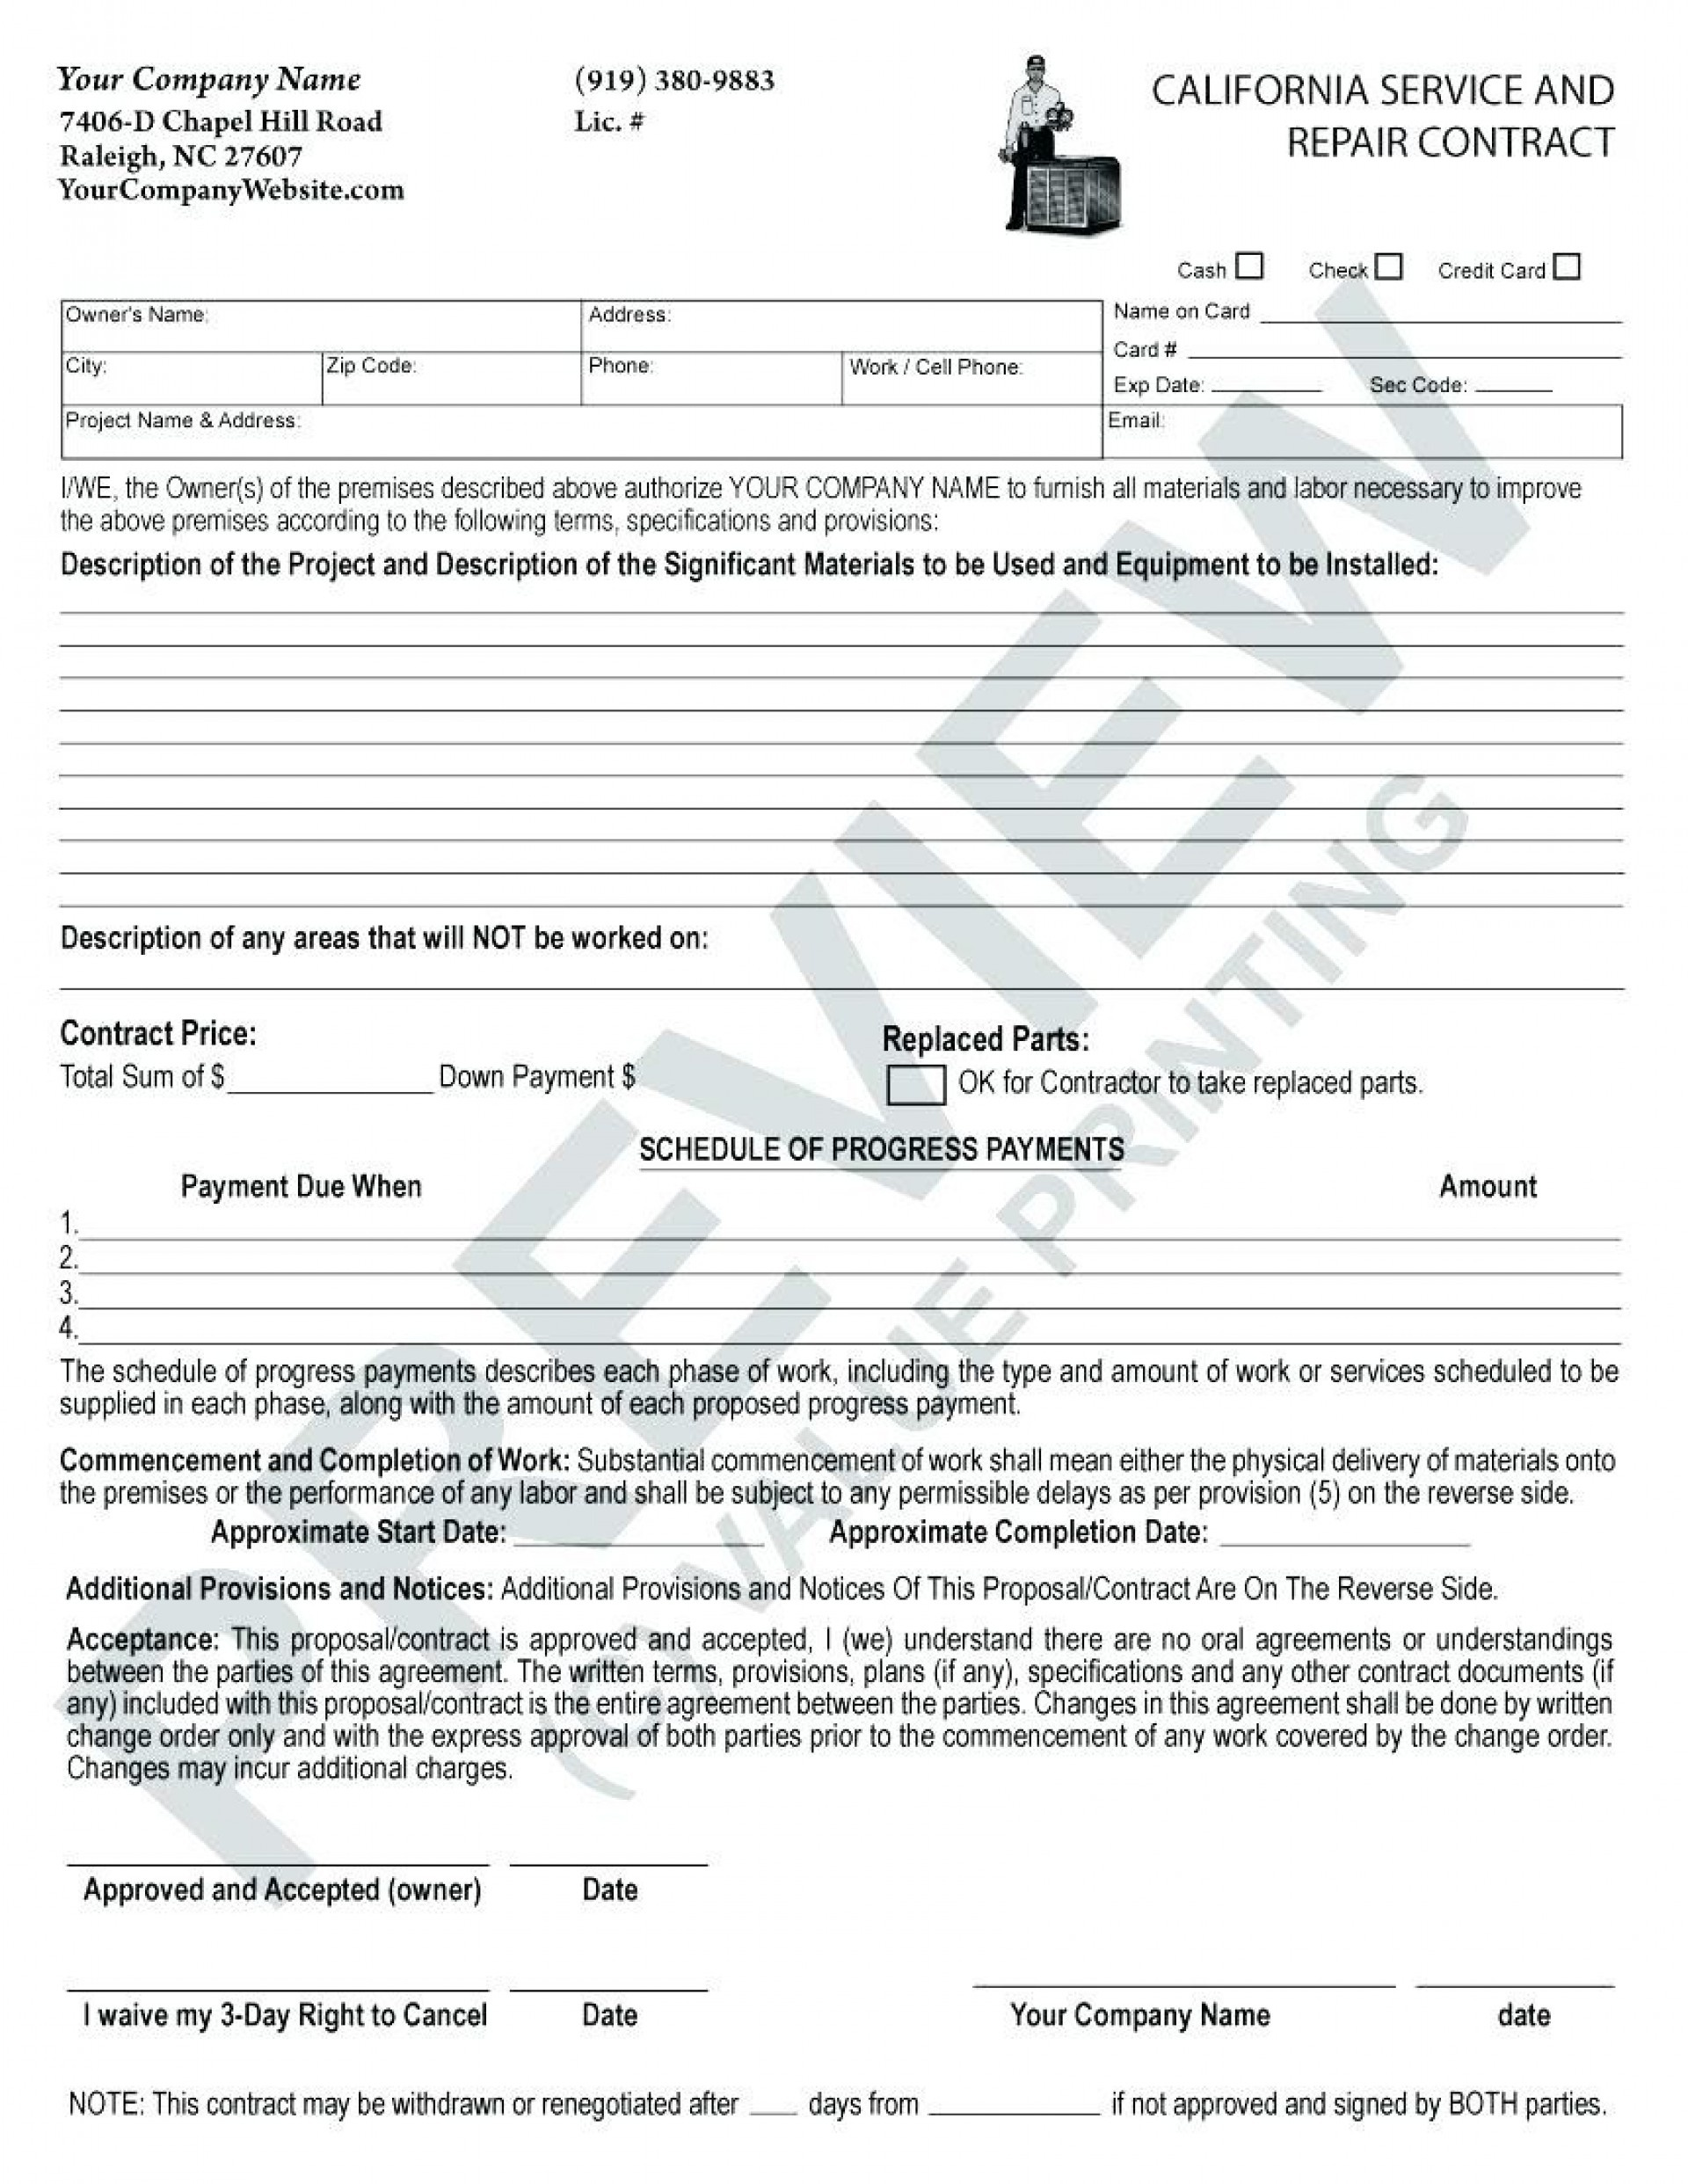 020 Hvac Service Contractate Maintenance Agreement Forms Free - Free Printable Documents